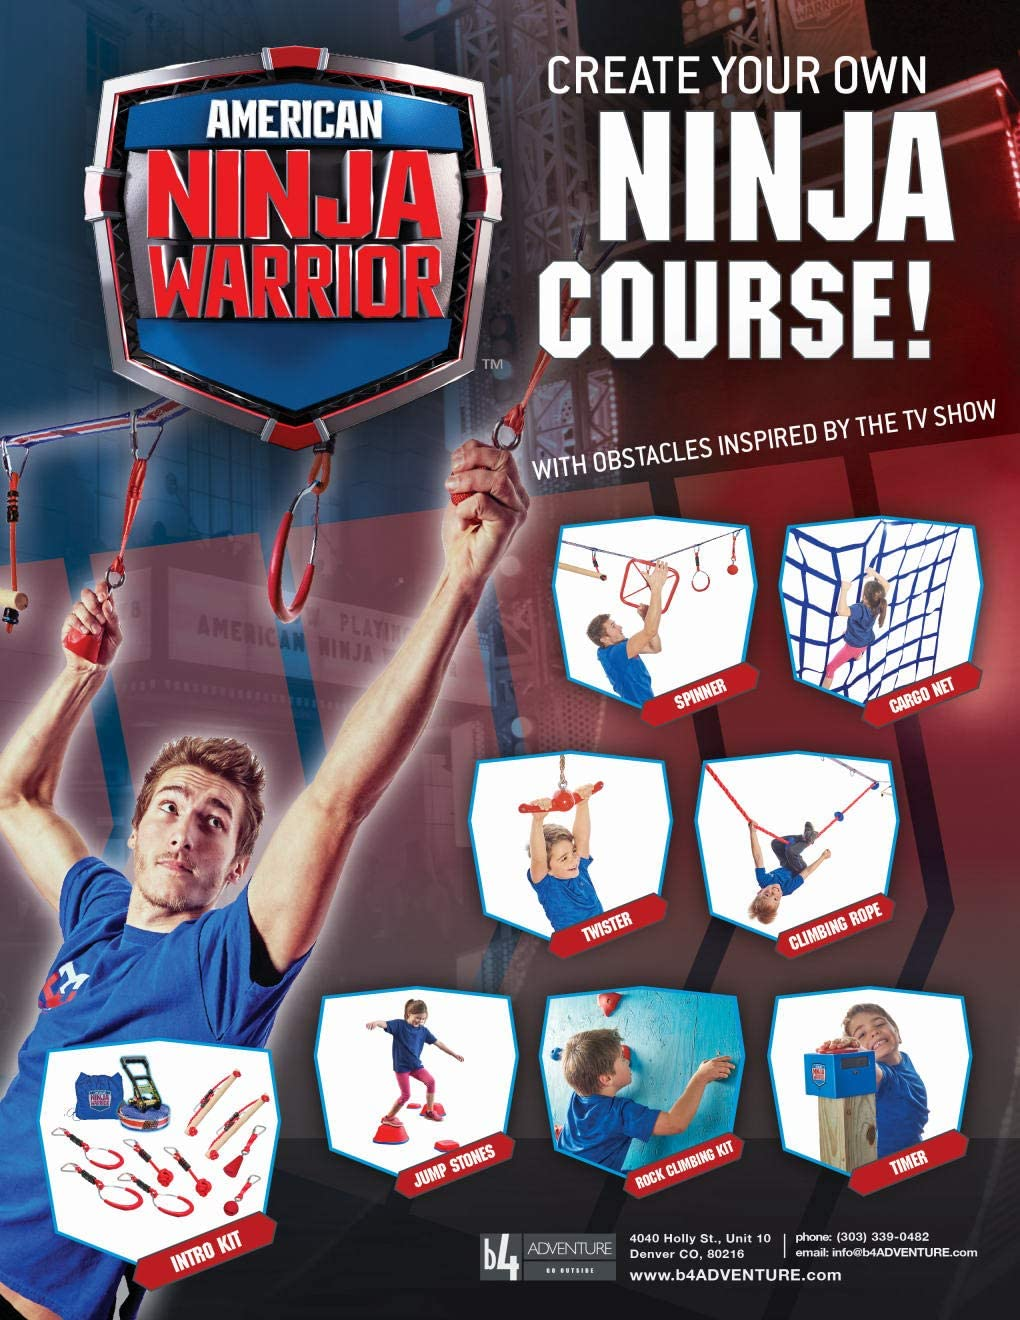 American Ninja Warrior Square Ninja Wheel